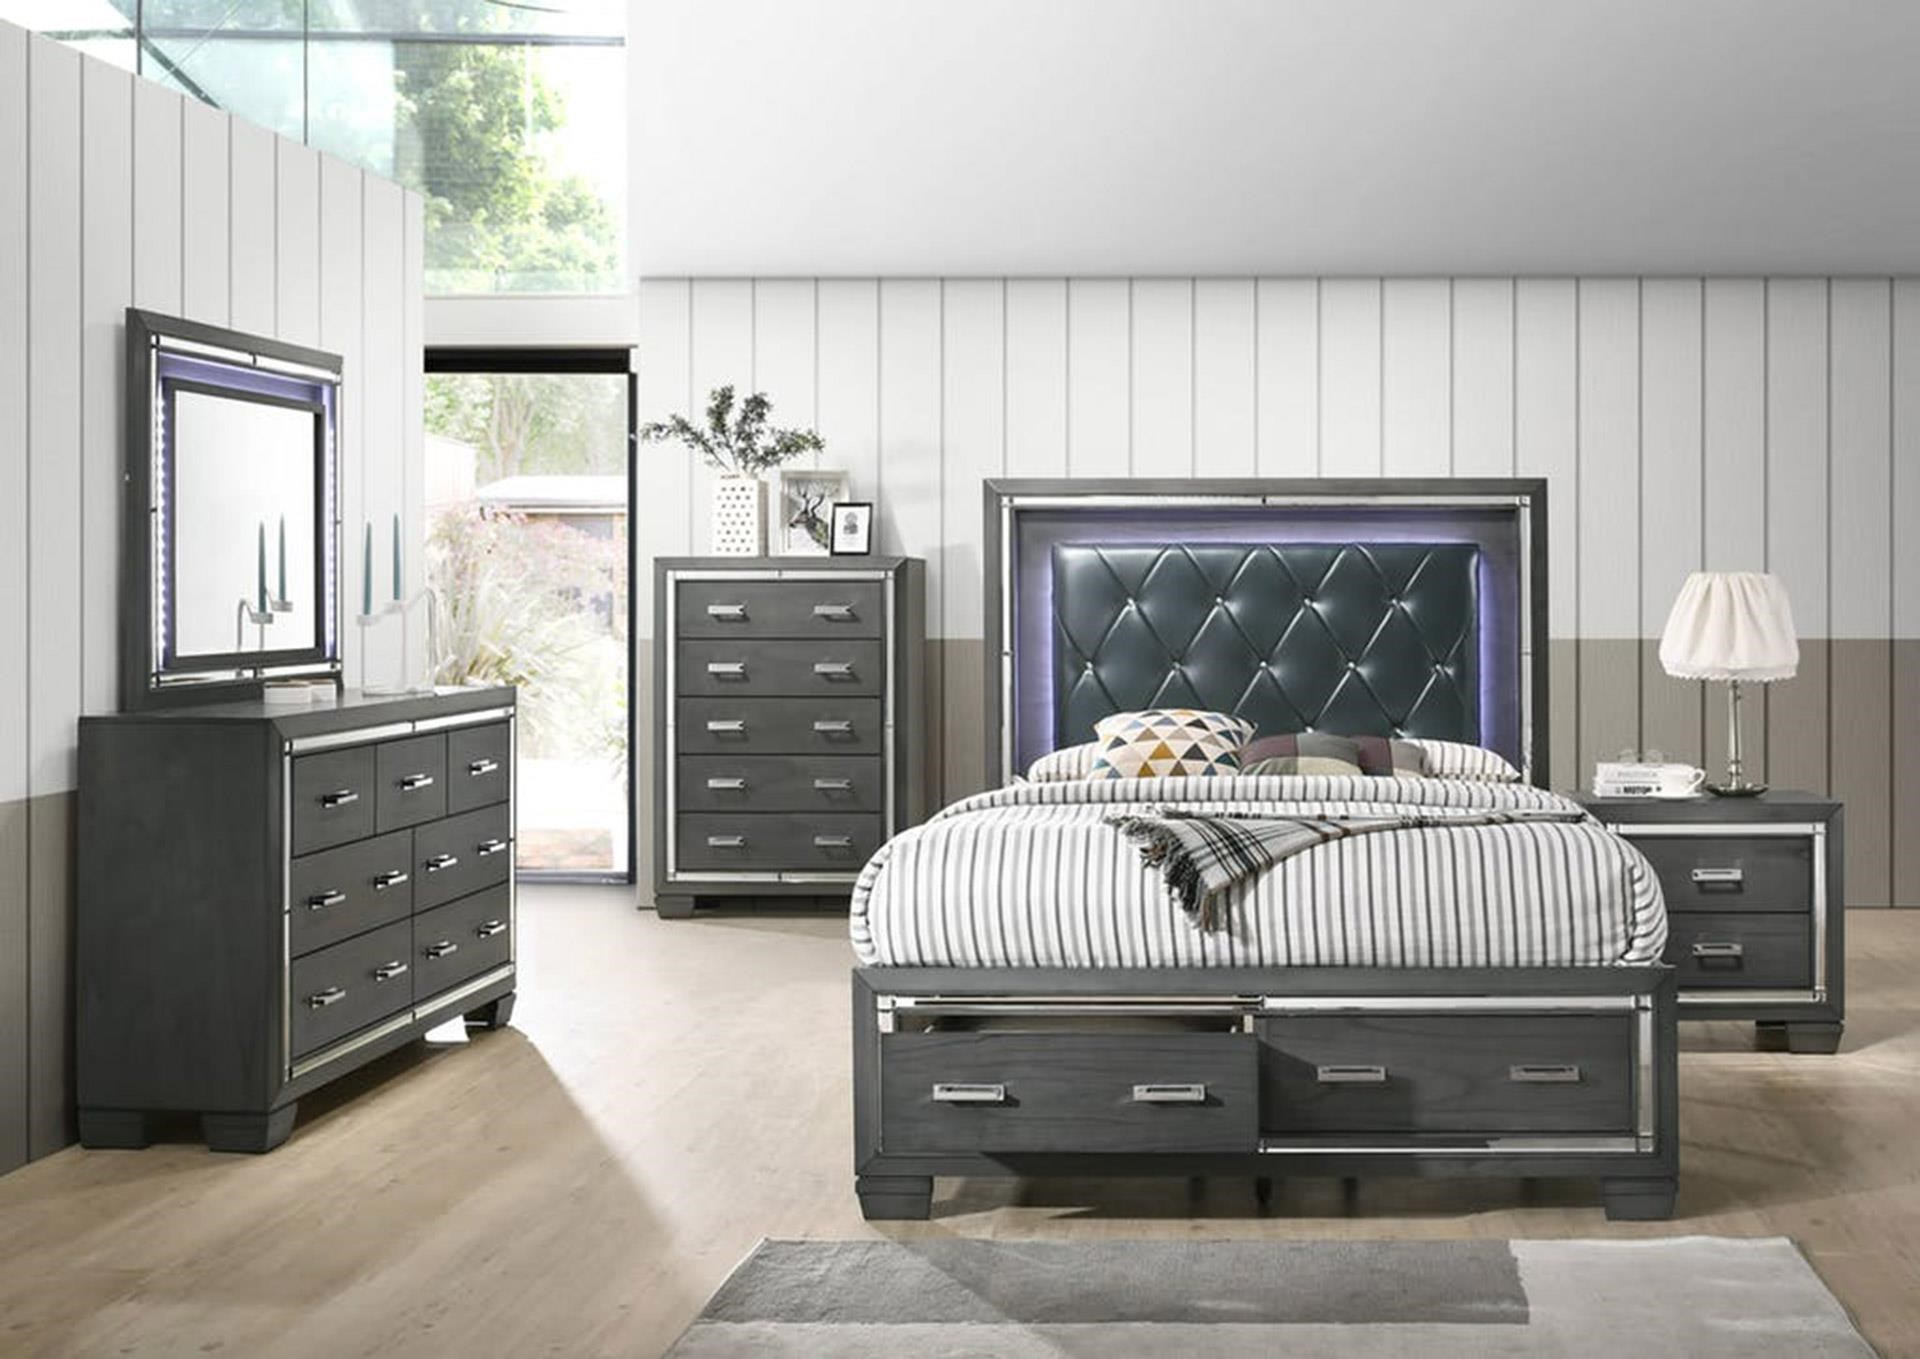 King Bed with LED Headboard & Storage Footboard, Dresser, LED Mirror, and Nightstand